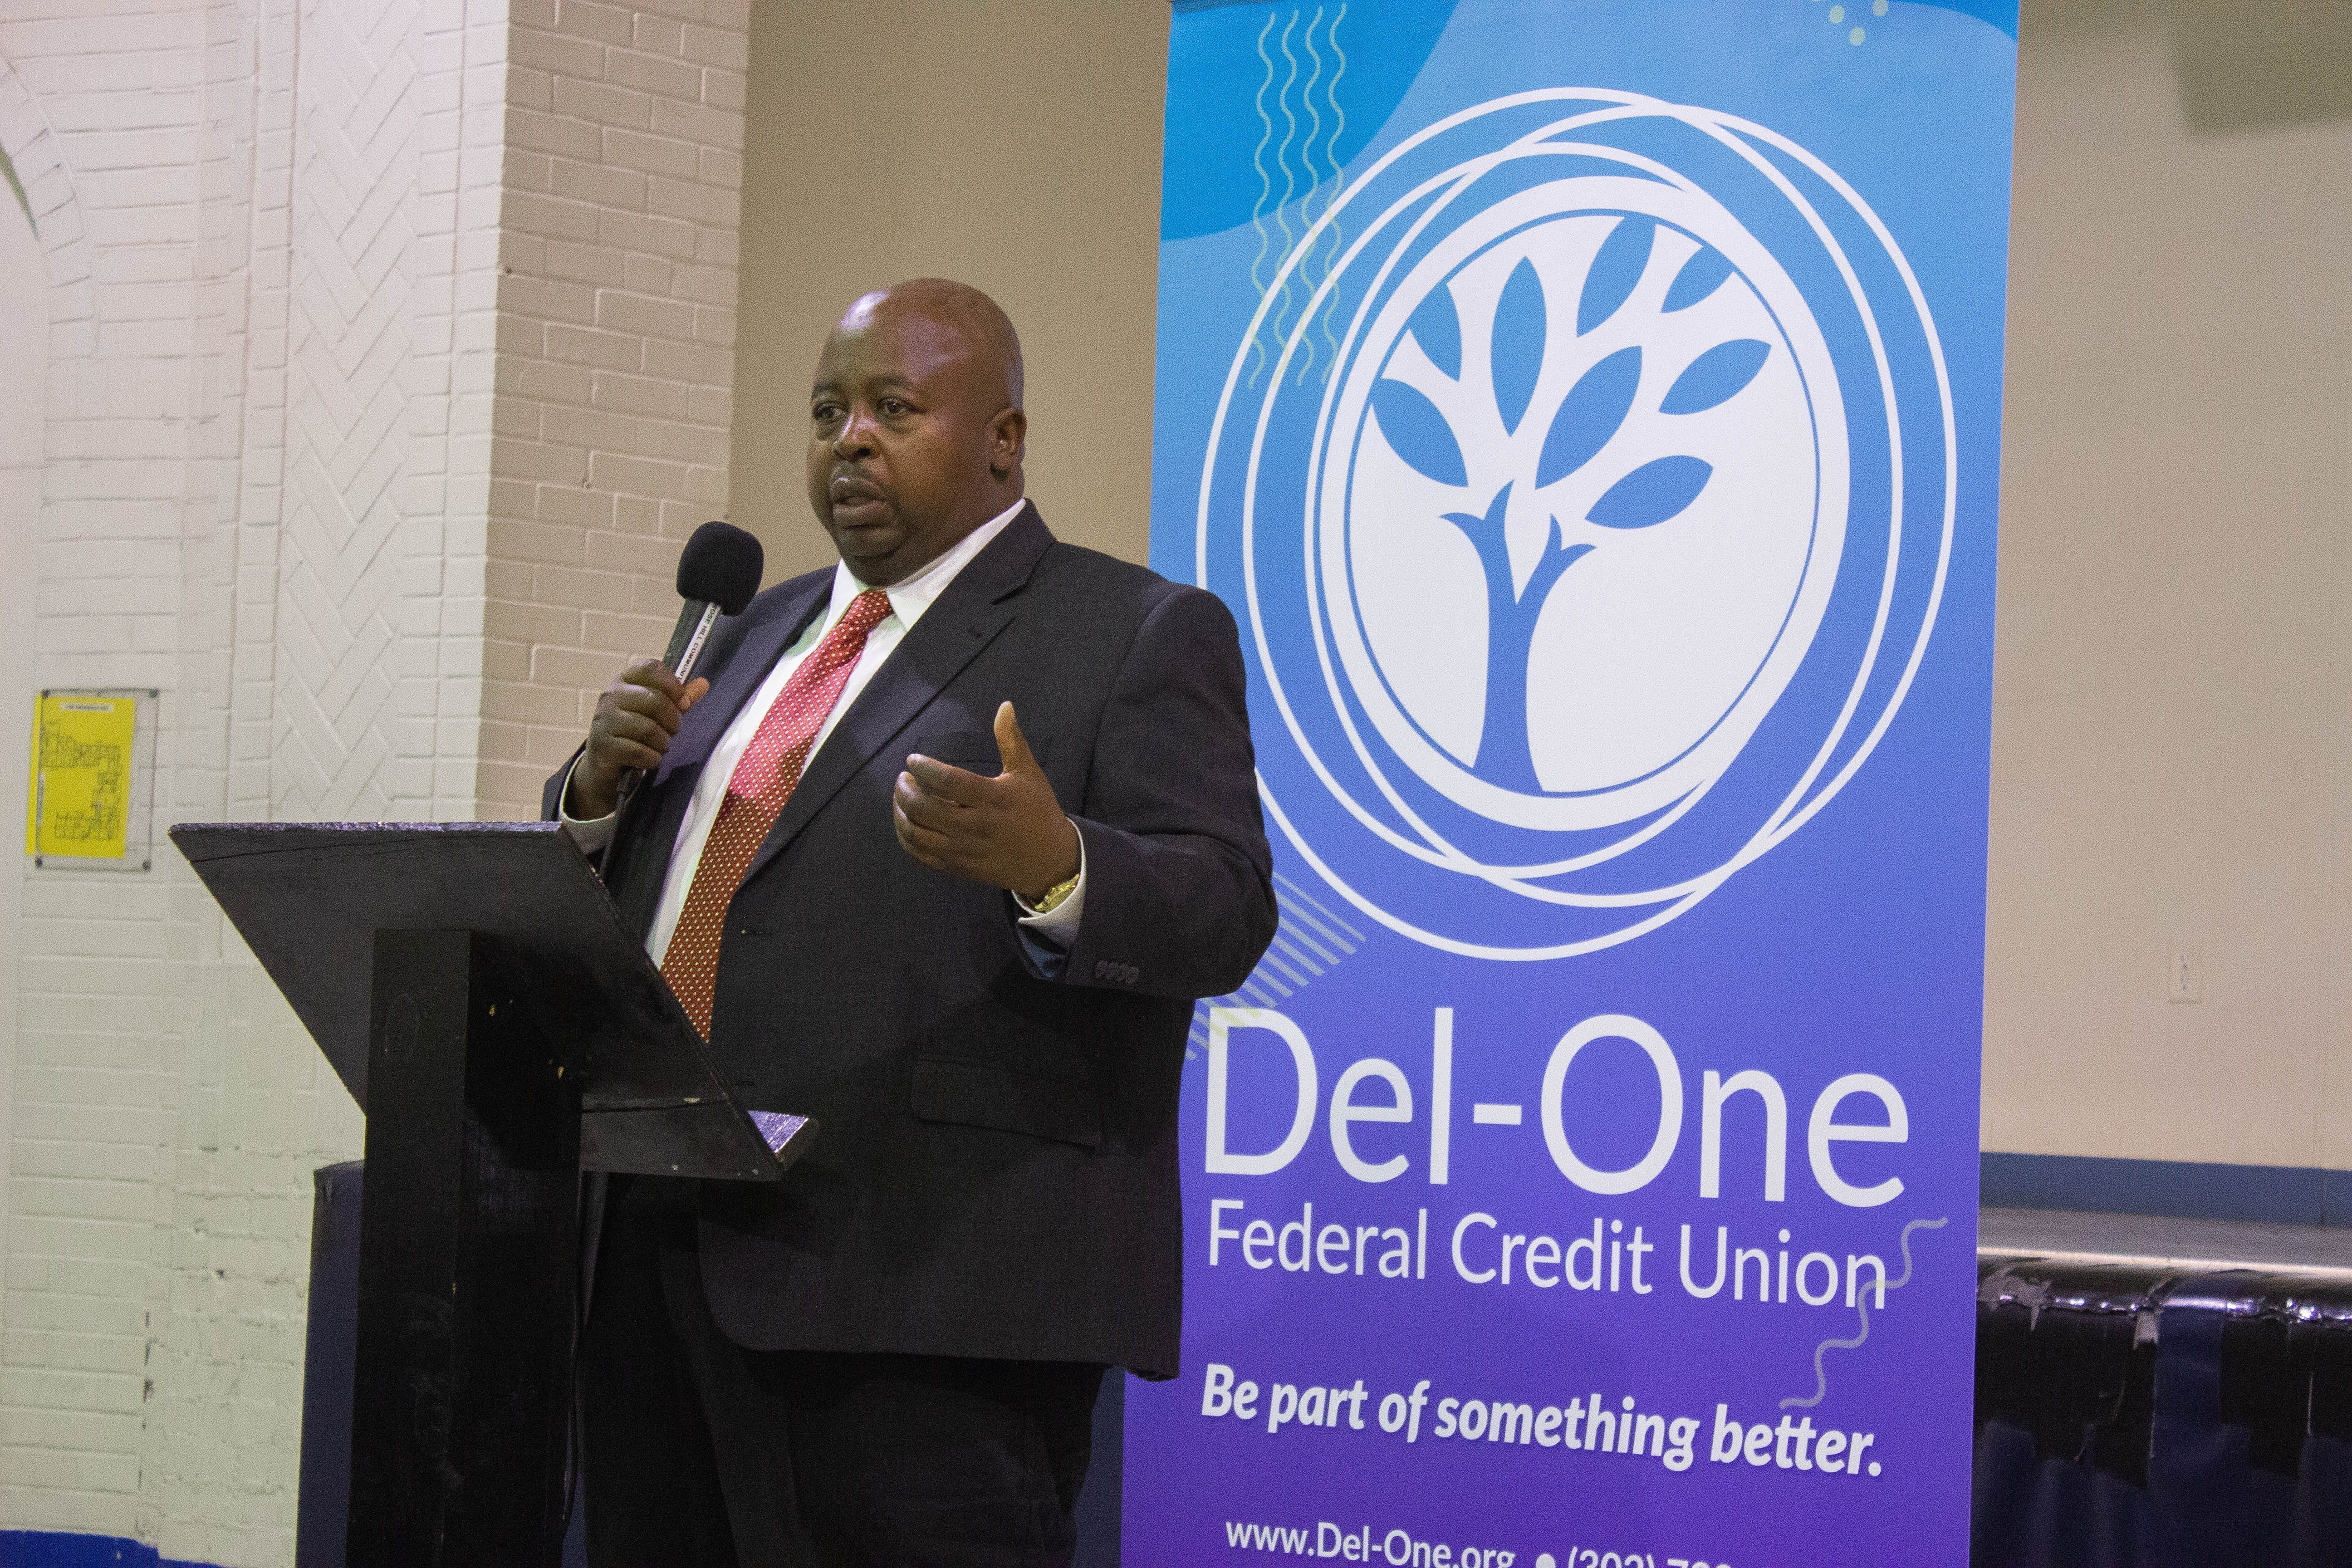 Del-One at the Rose Hill Community Center ceremony